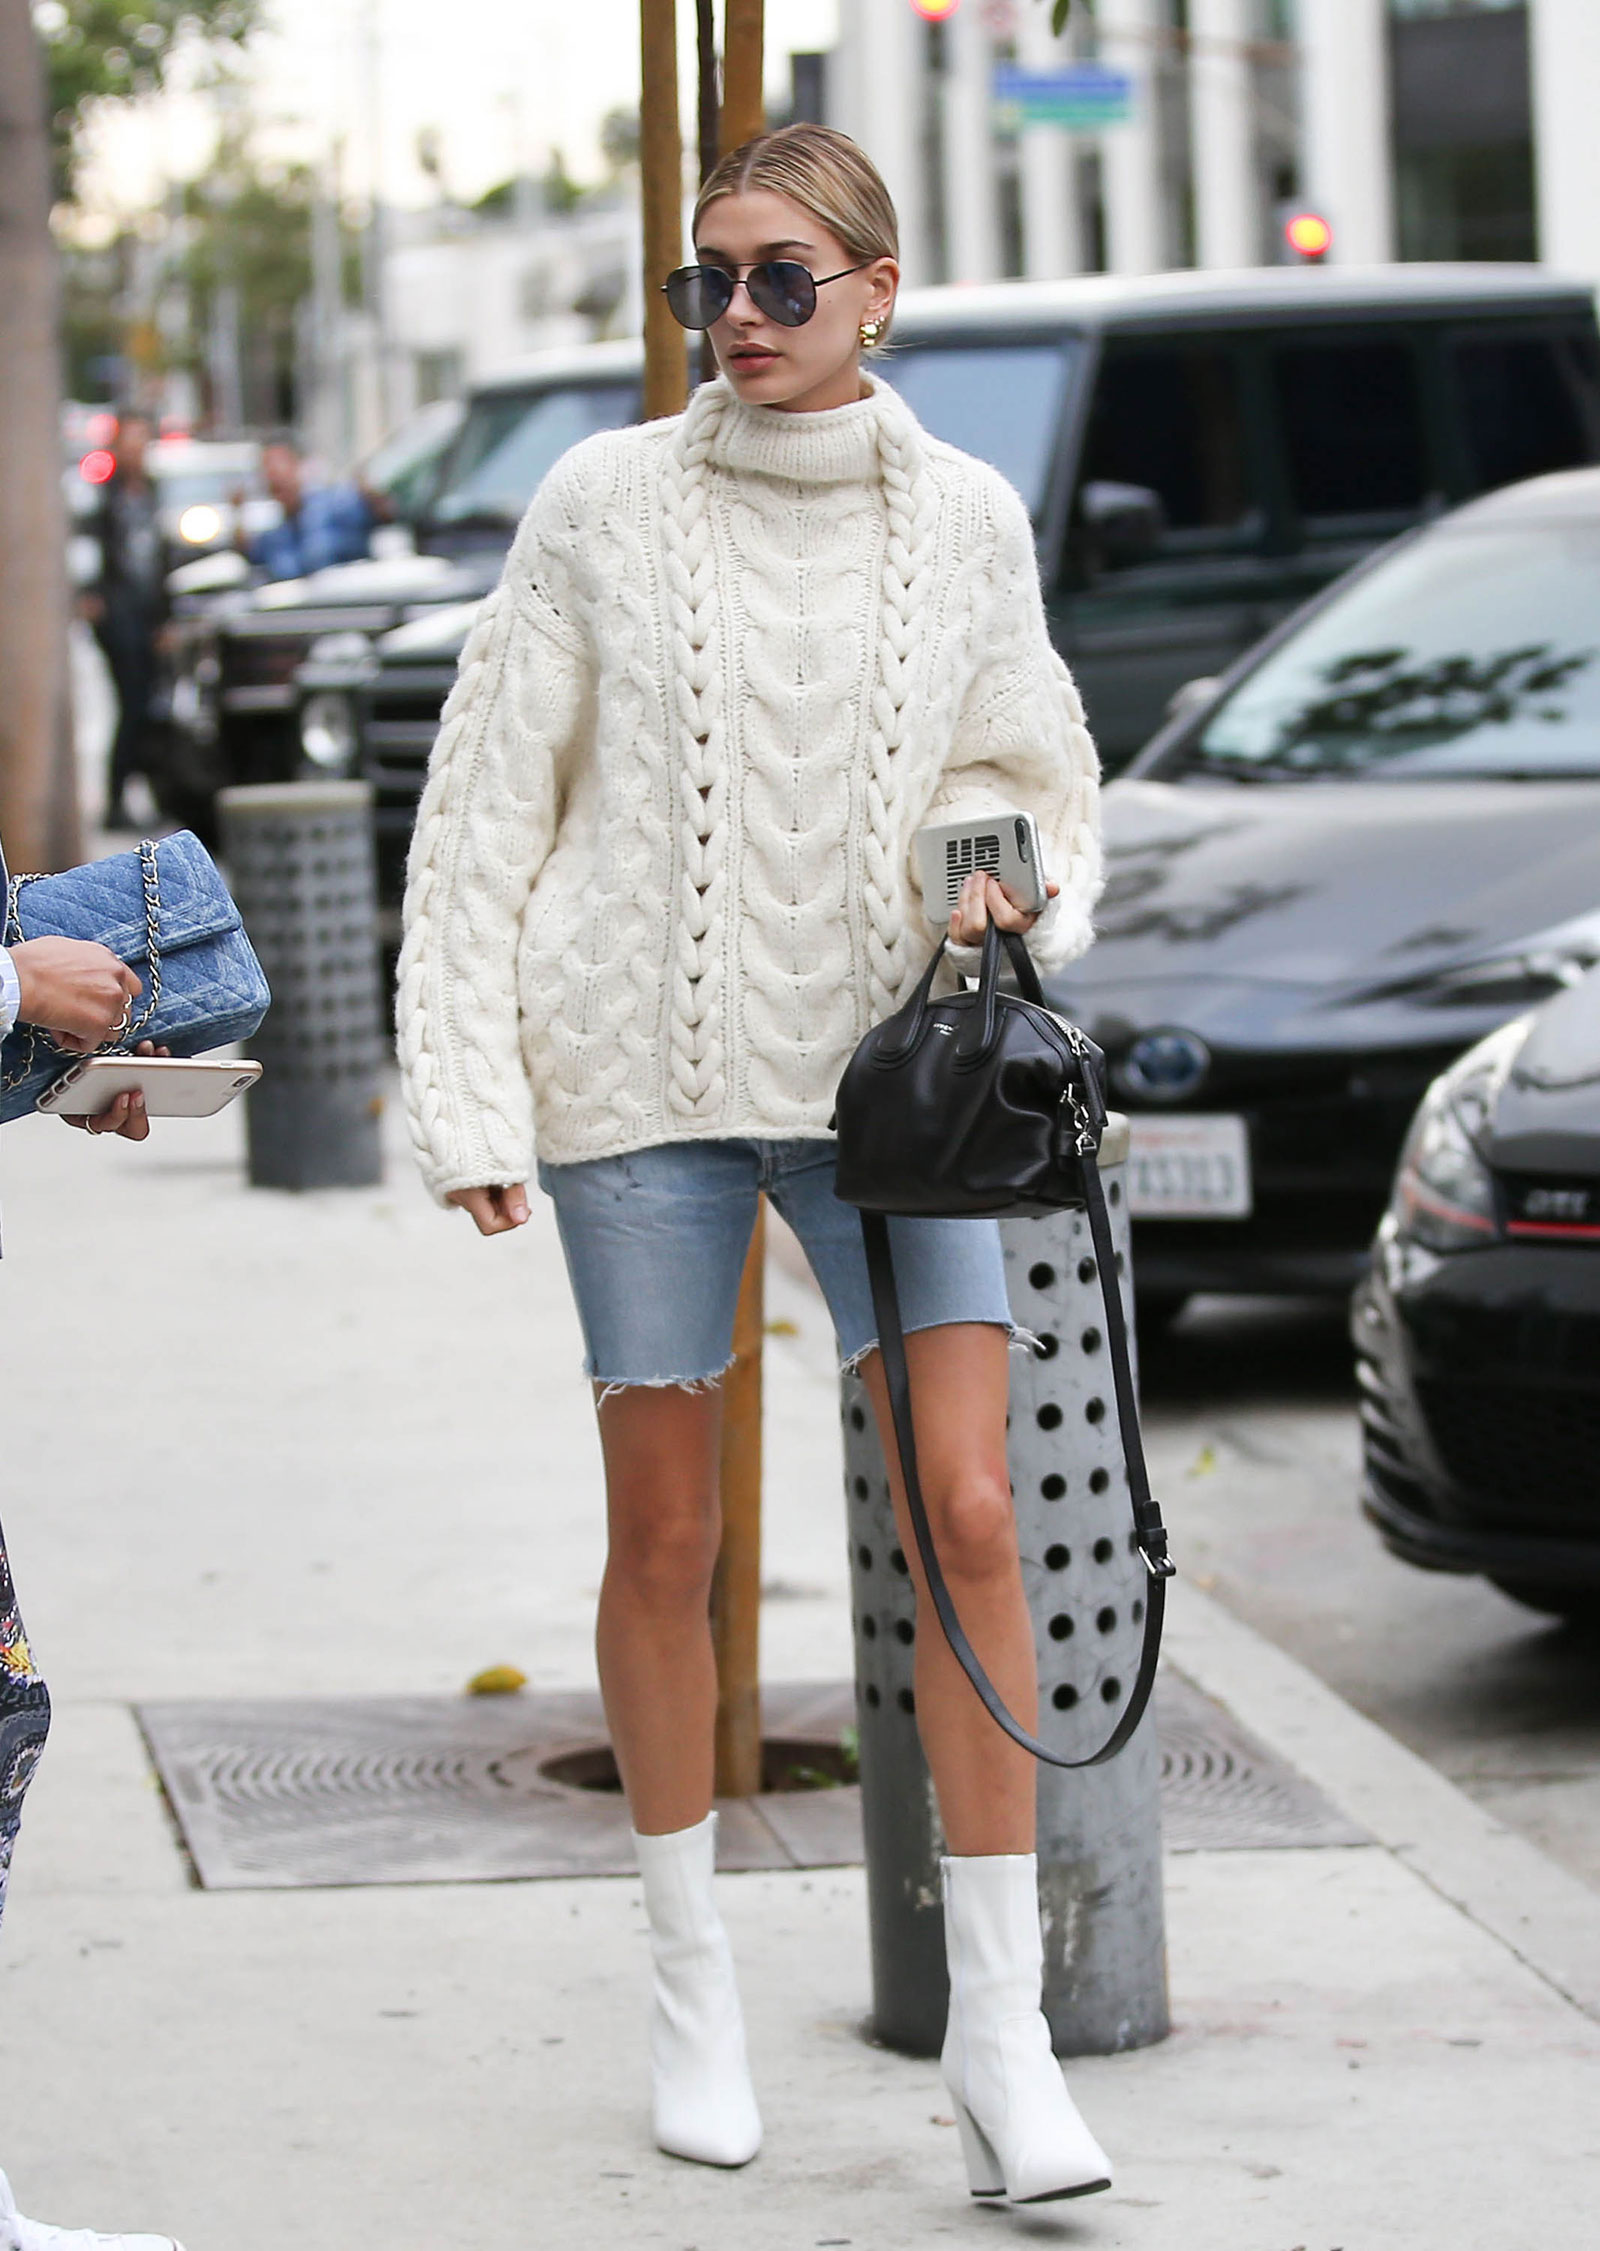 Hailey Baldwin S Oversized Sweater And White Ankle Boots